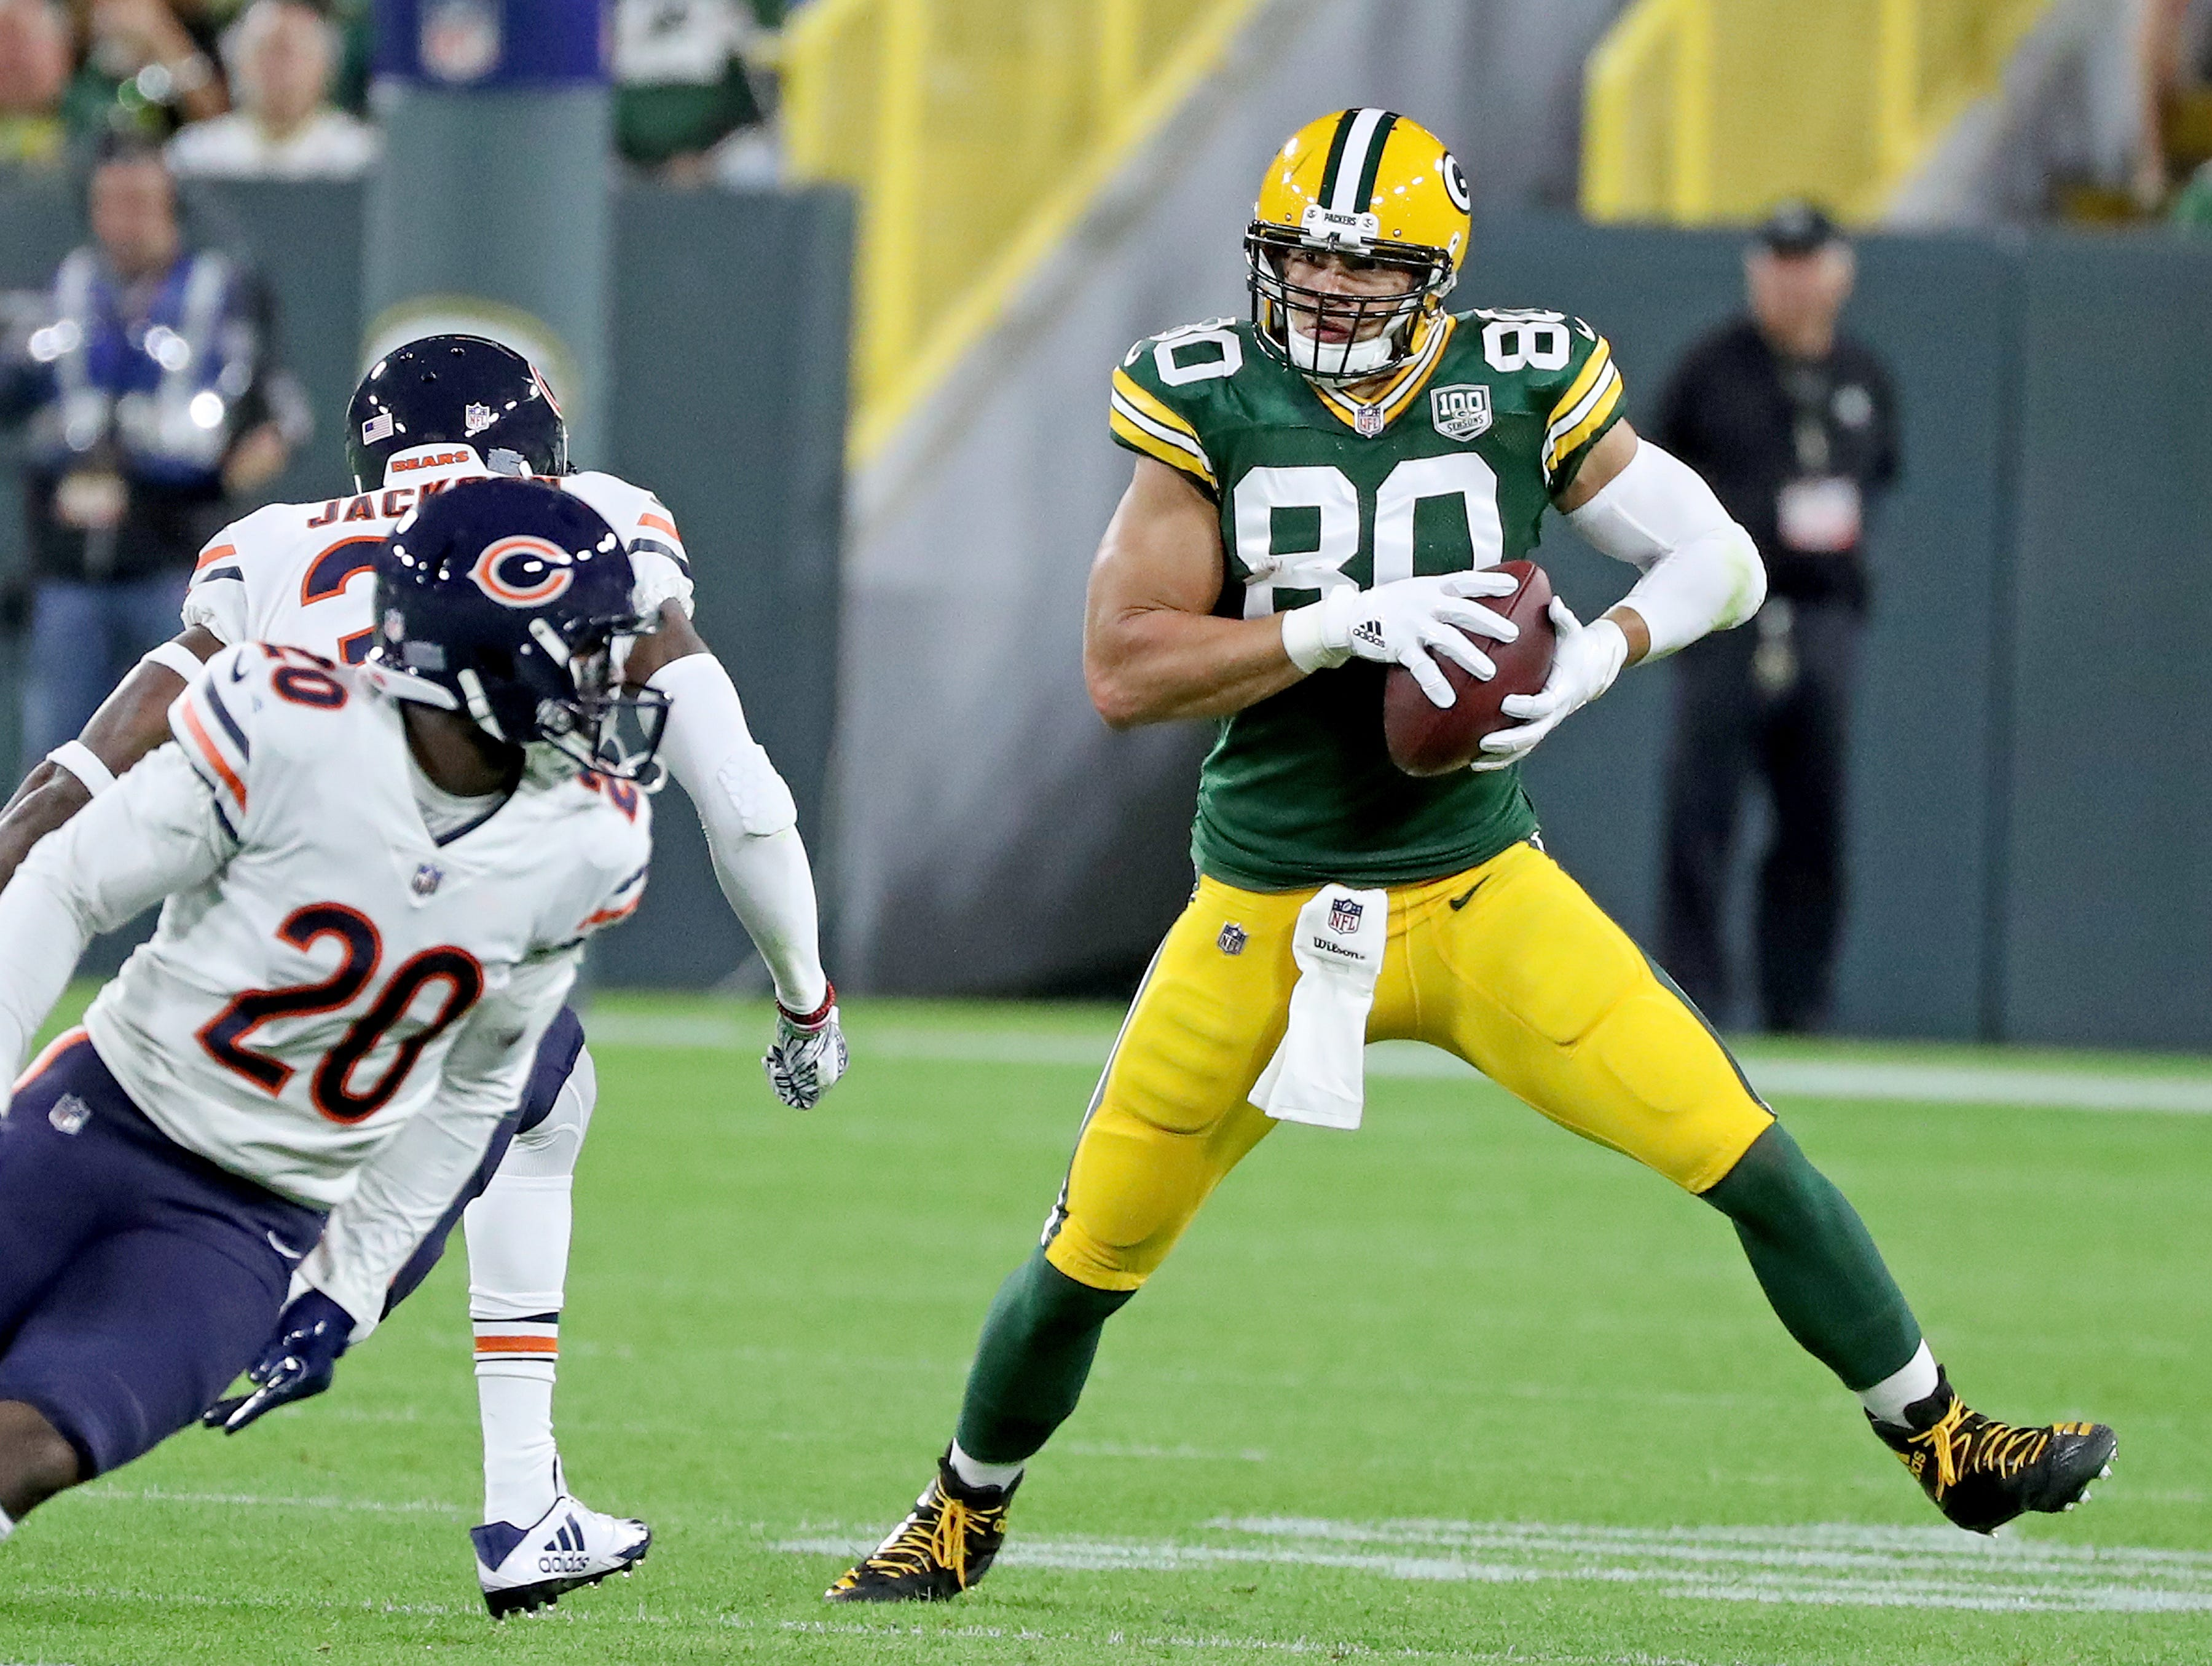 Green Bay Packers tight end Jimmy Graham (80) catches a pass against the Chicago Bears Sunday, September 9, 2018 at Lambeau Field in Green Bay, Wis. Jim Matthews/USA TODAY NETWORK-Wisconsin